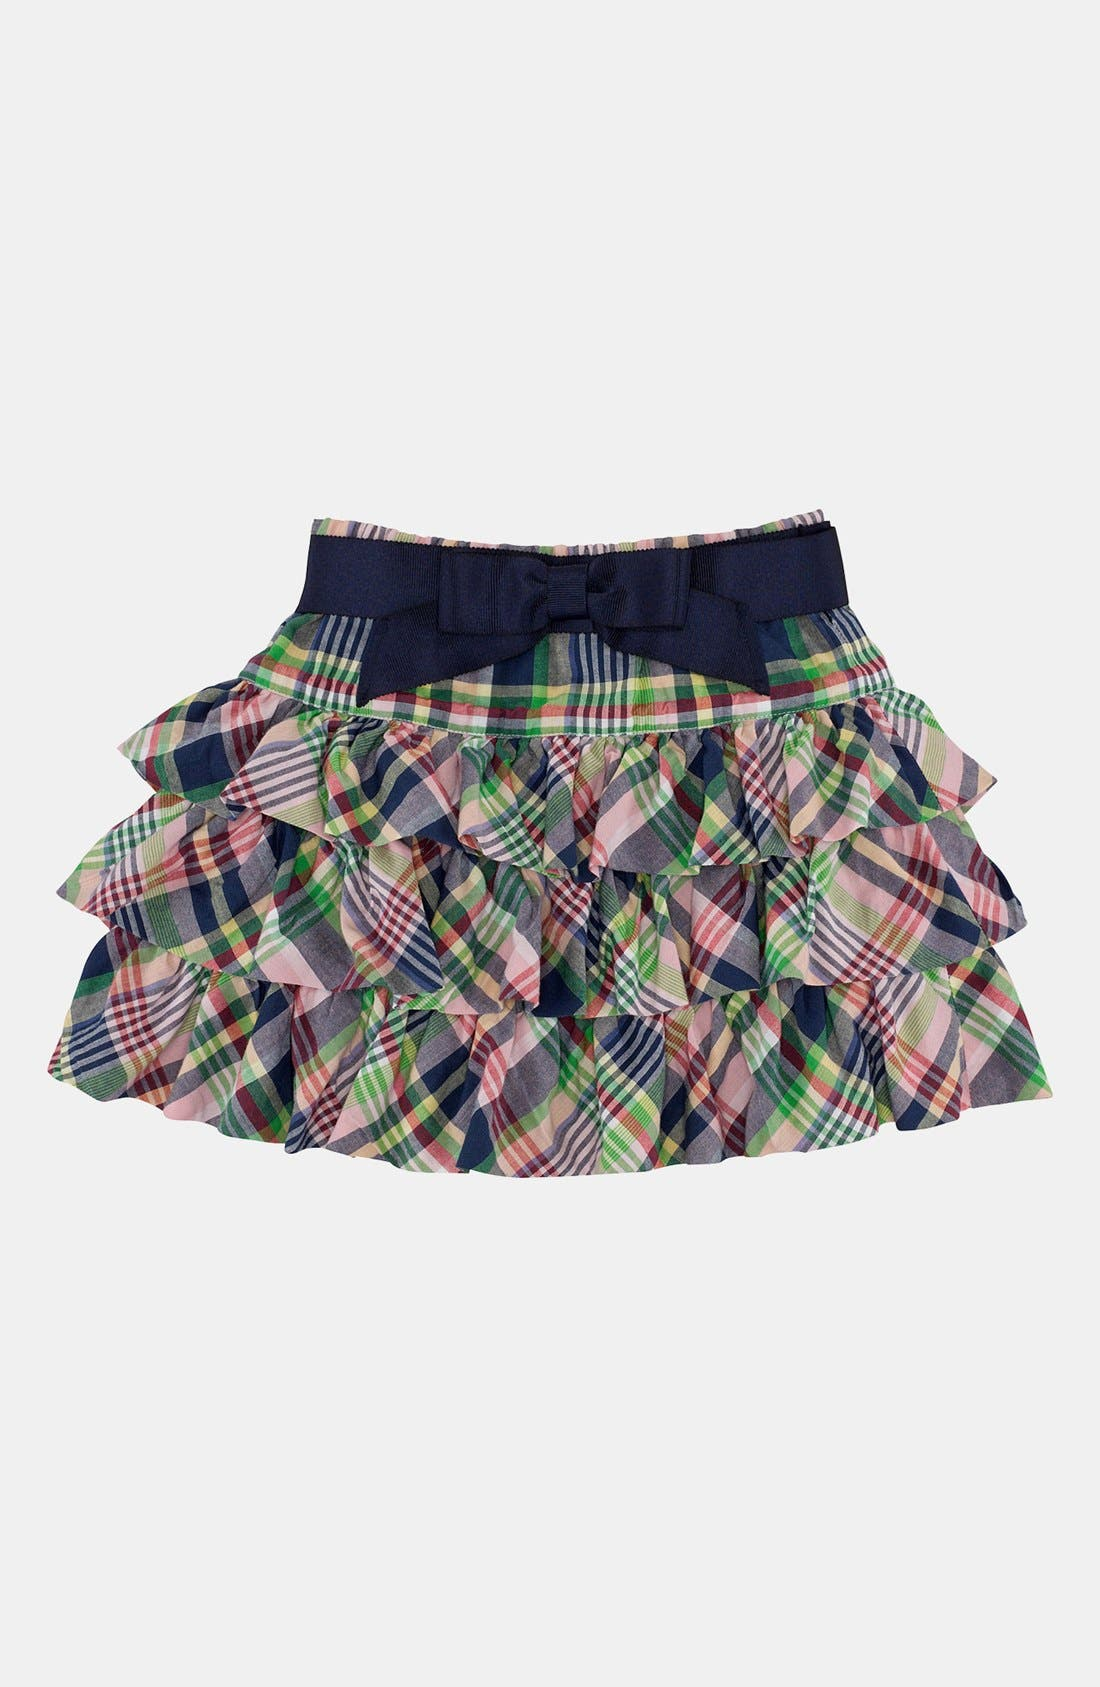 Alternate Image 1 Selected - Ralph Lauren Plaid Skirt (Toddler)